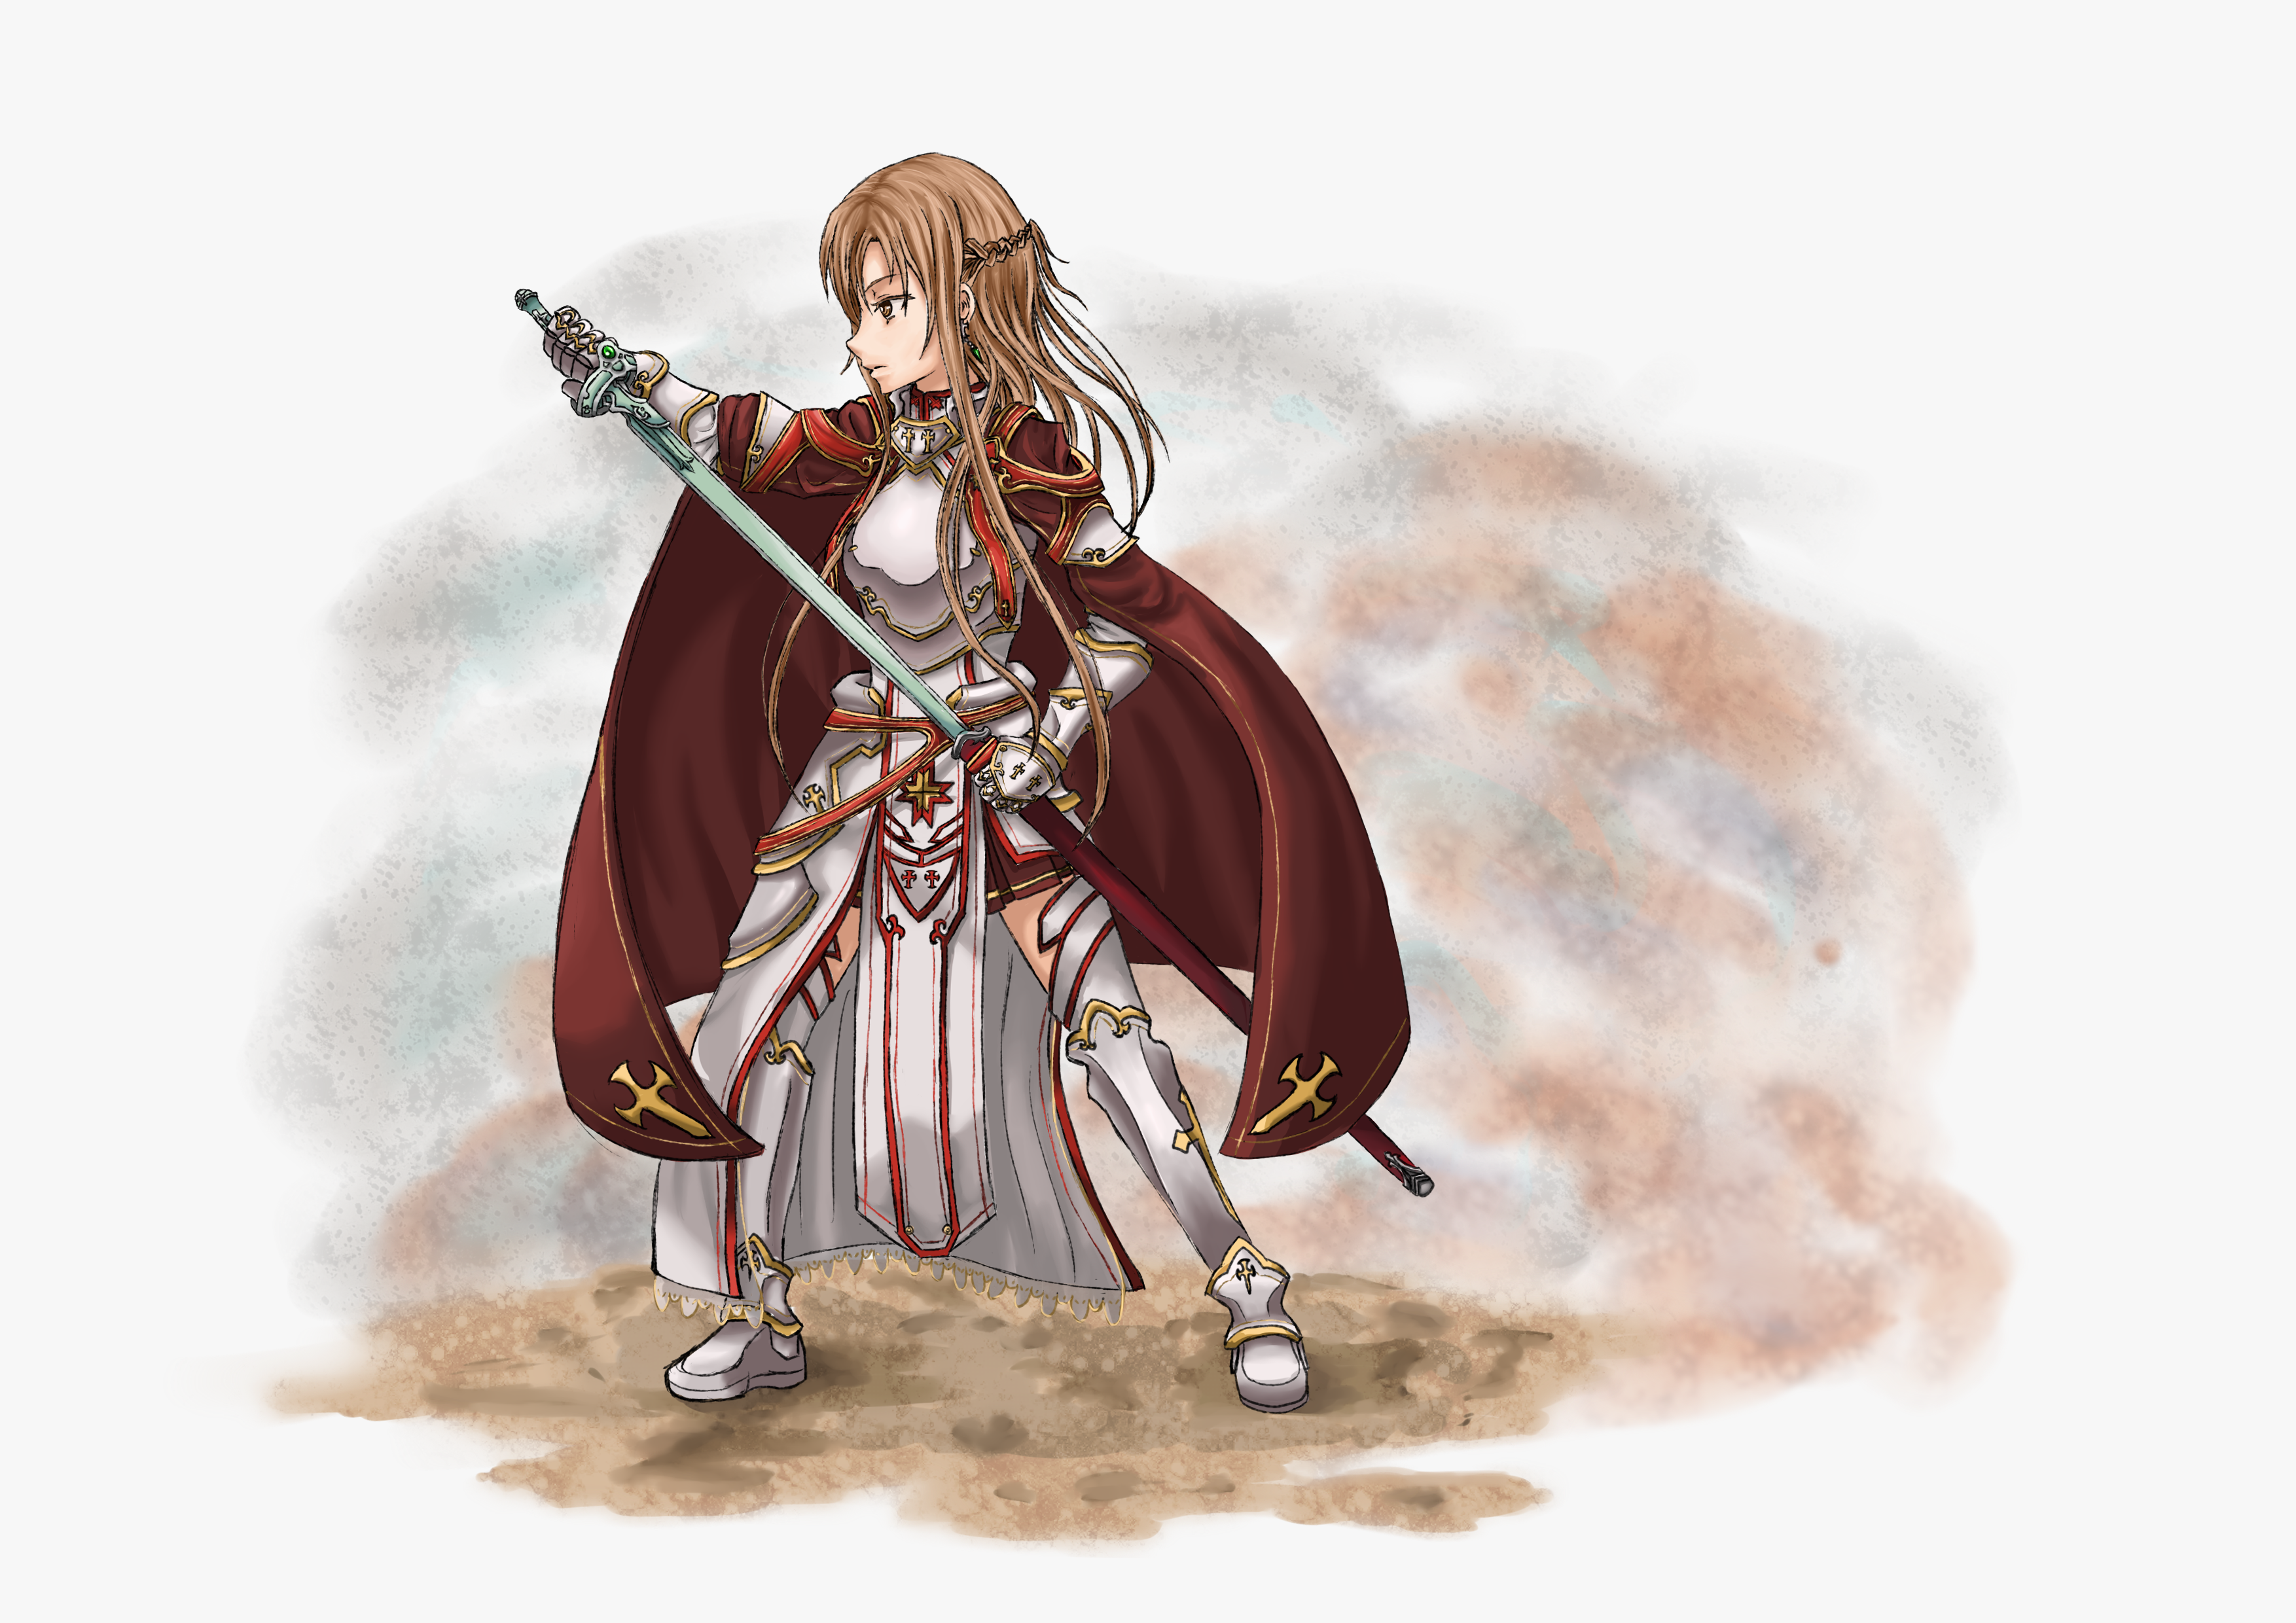 Knight Asuna Alicization By Z3phyra On Deviantart